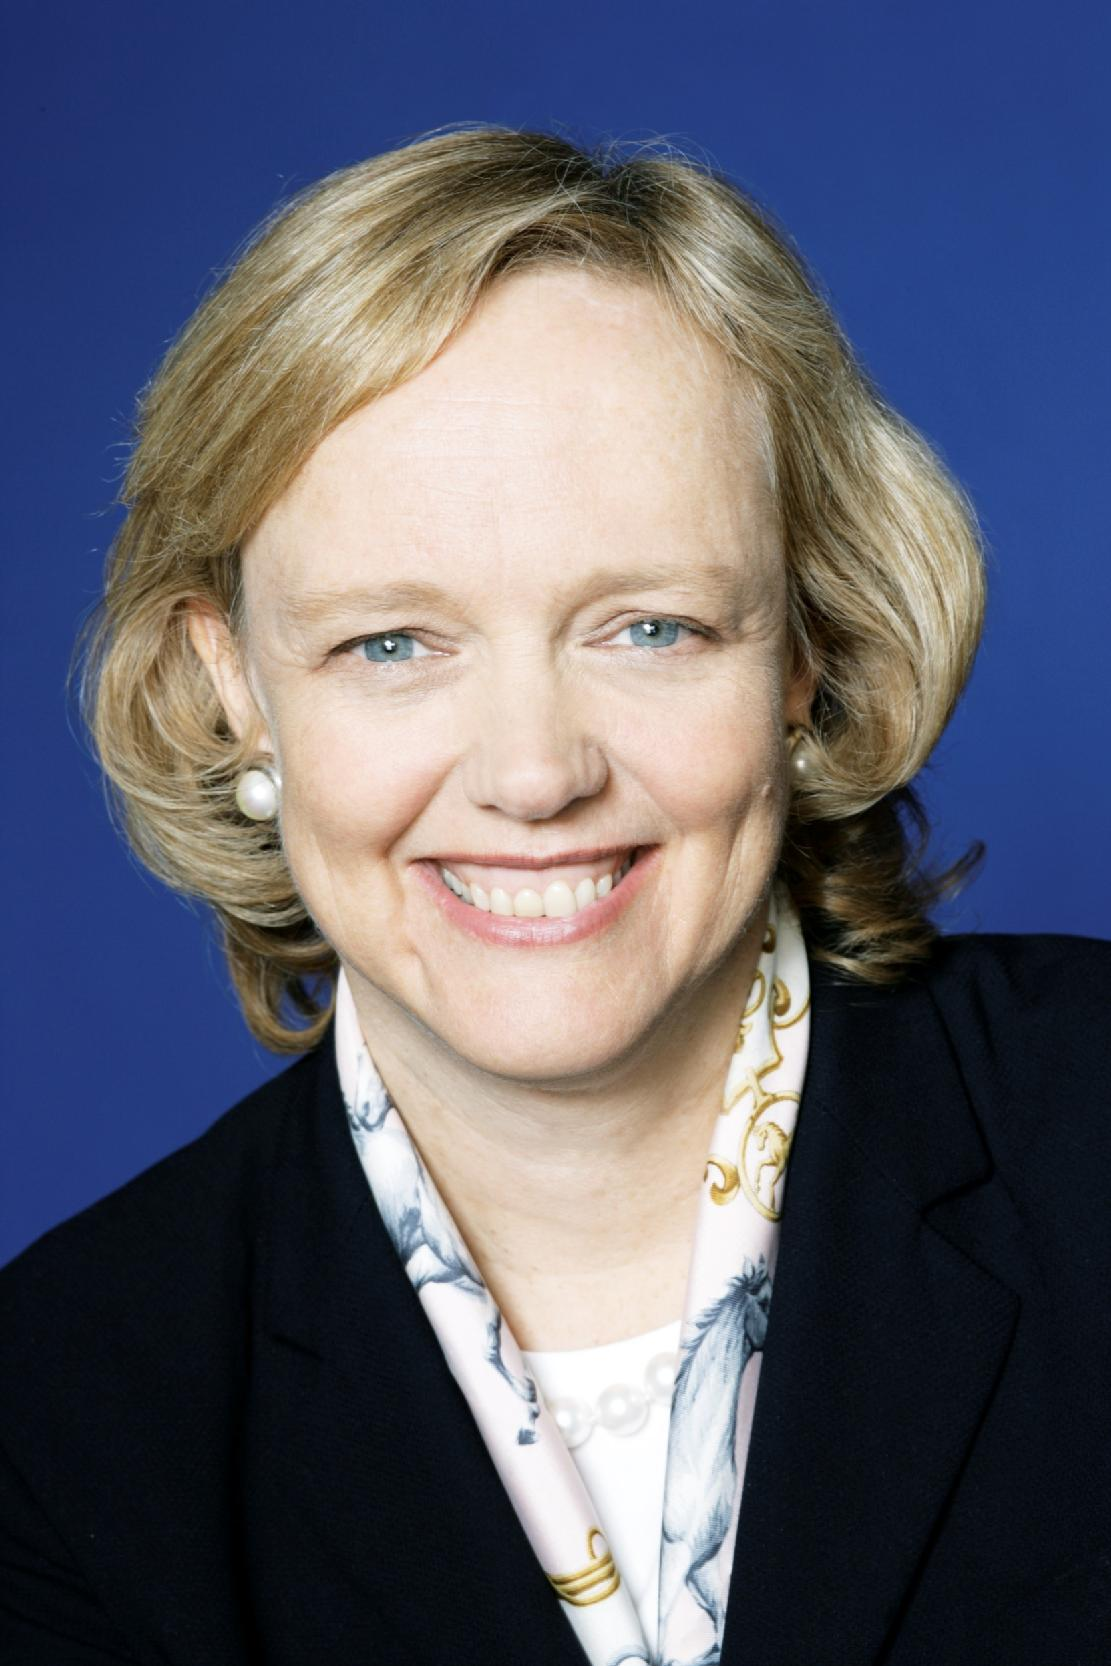 Image: Meg Whitman, Republican Candidate For Governor Of California